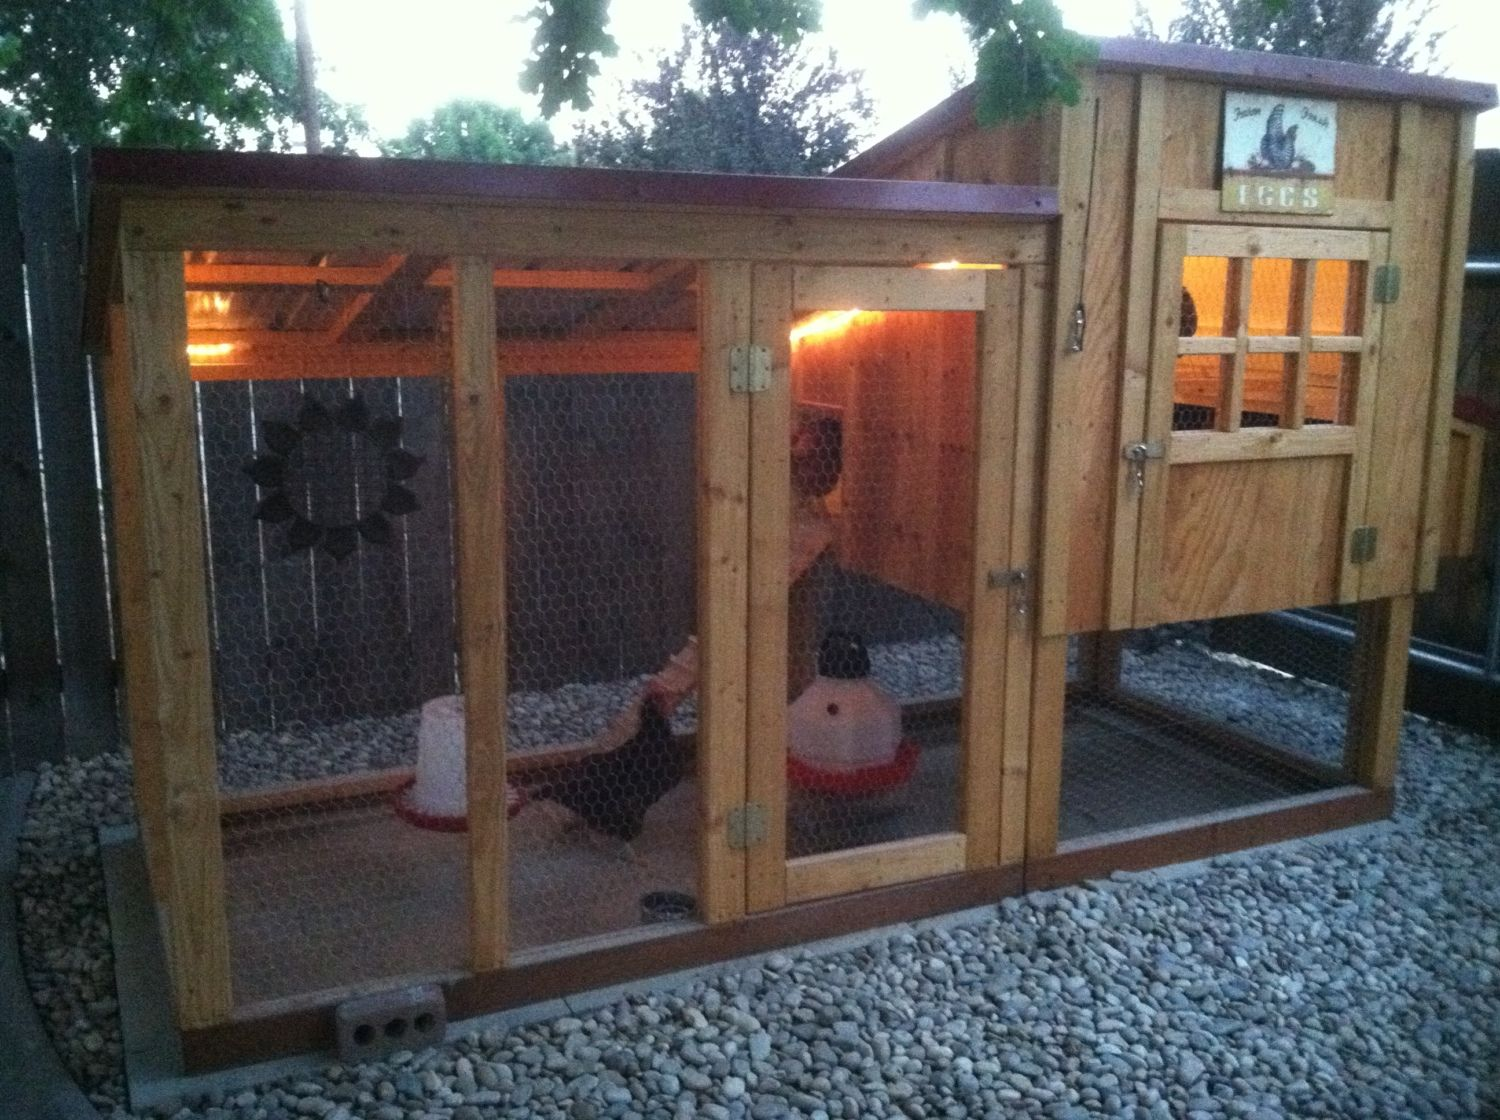 Ventilation For Chicken Houses : Small coop ventilation winterizing suggestions needed